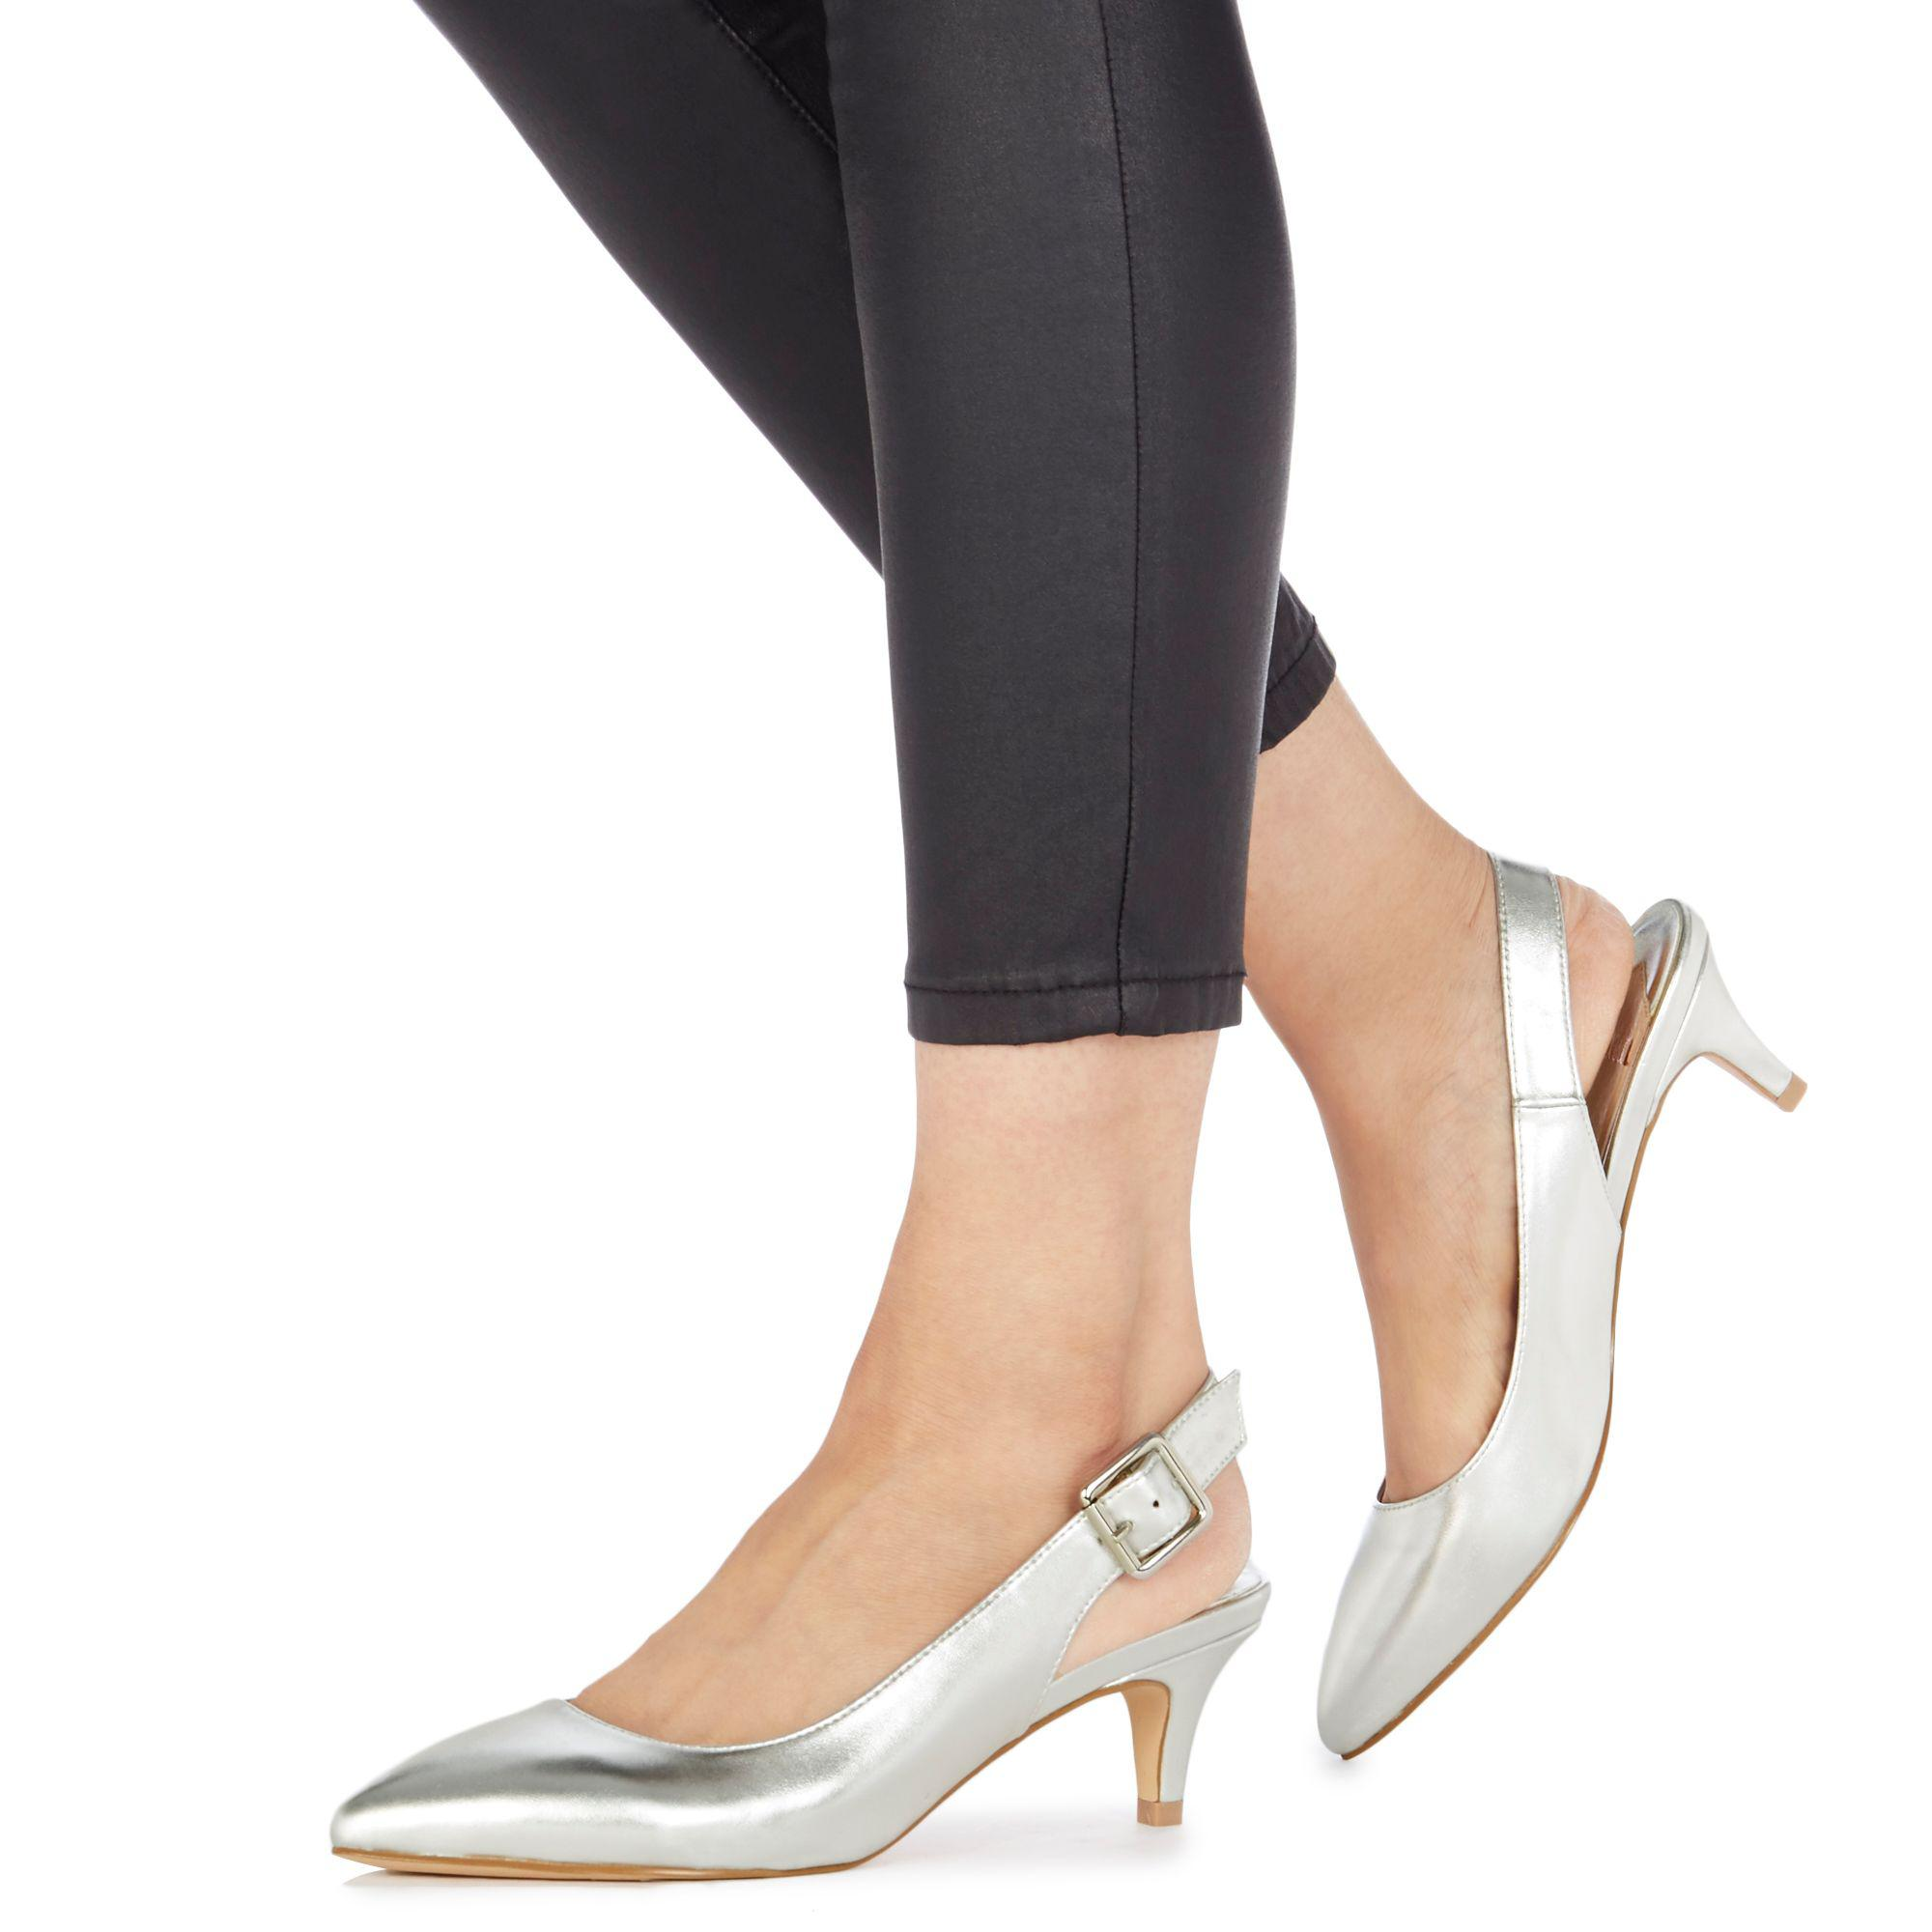 48964190de5 Faith Silver  citten  Mid Kitten Heel Slingbacks in Metallic - Lyst